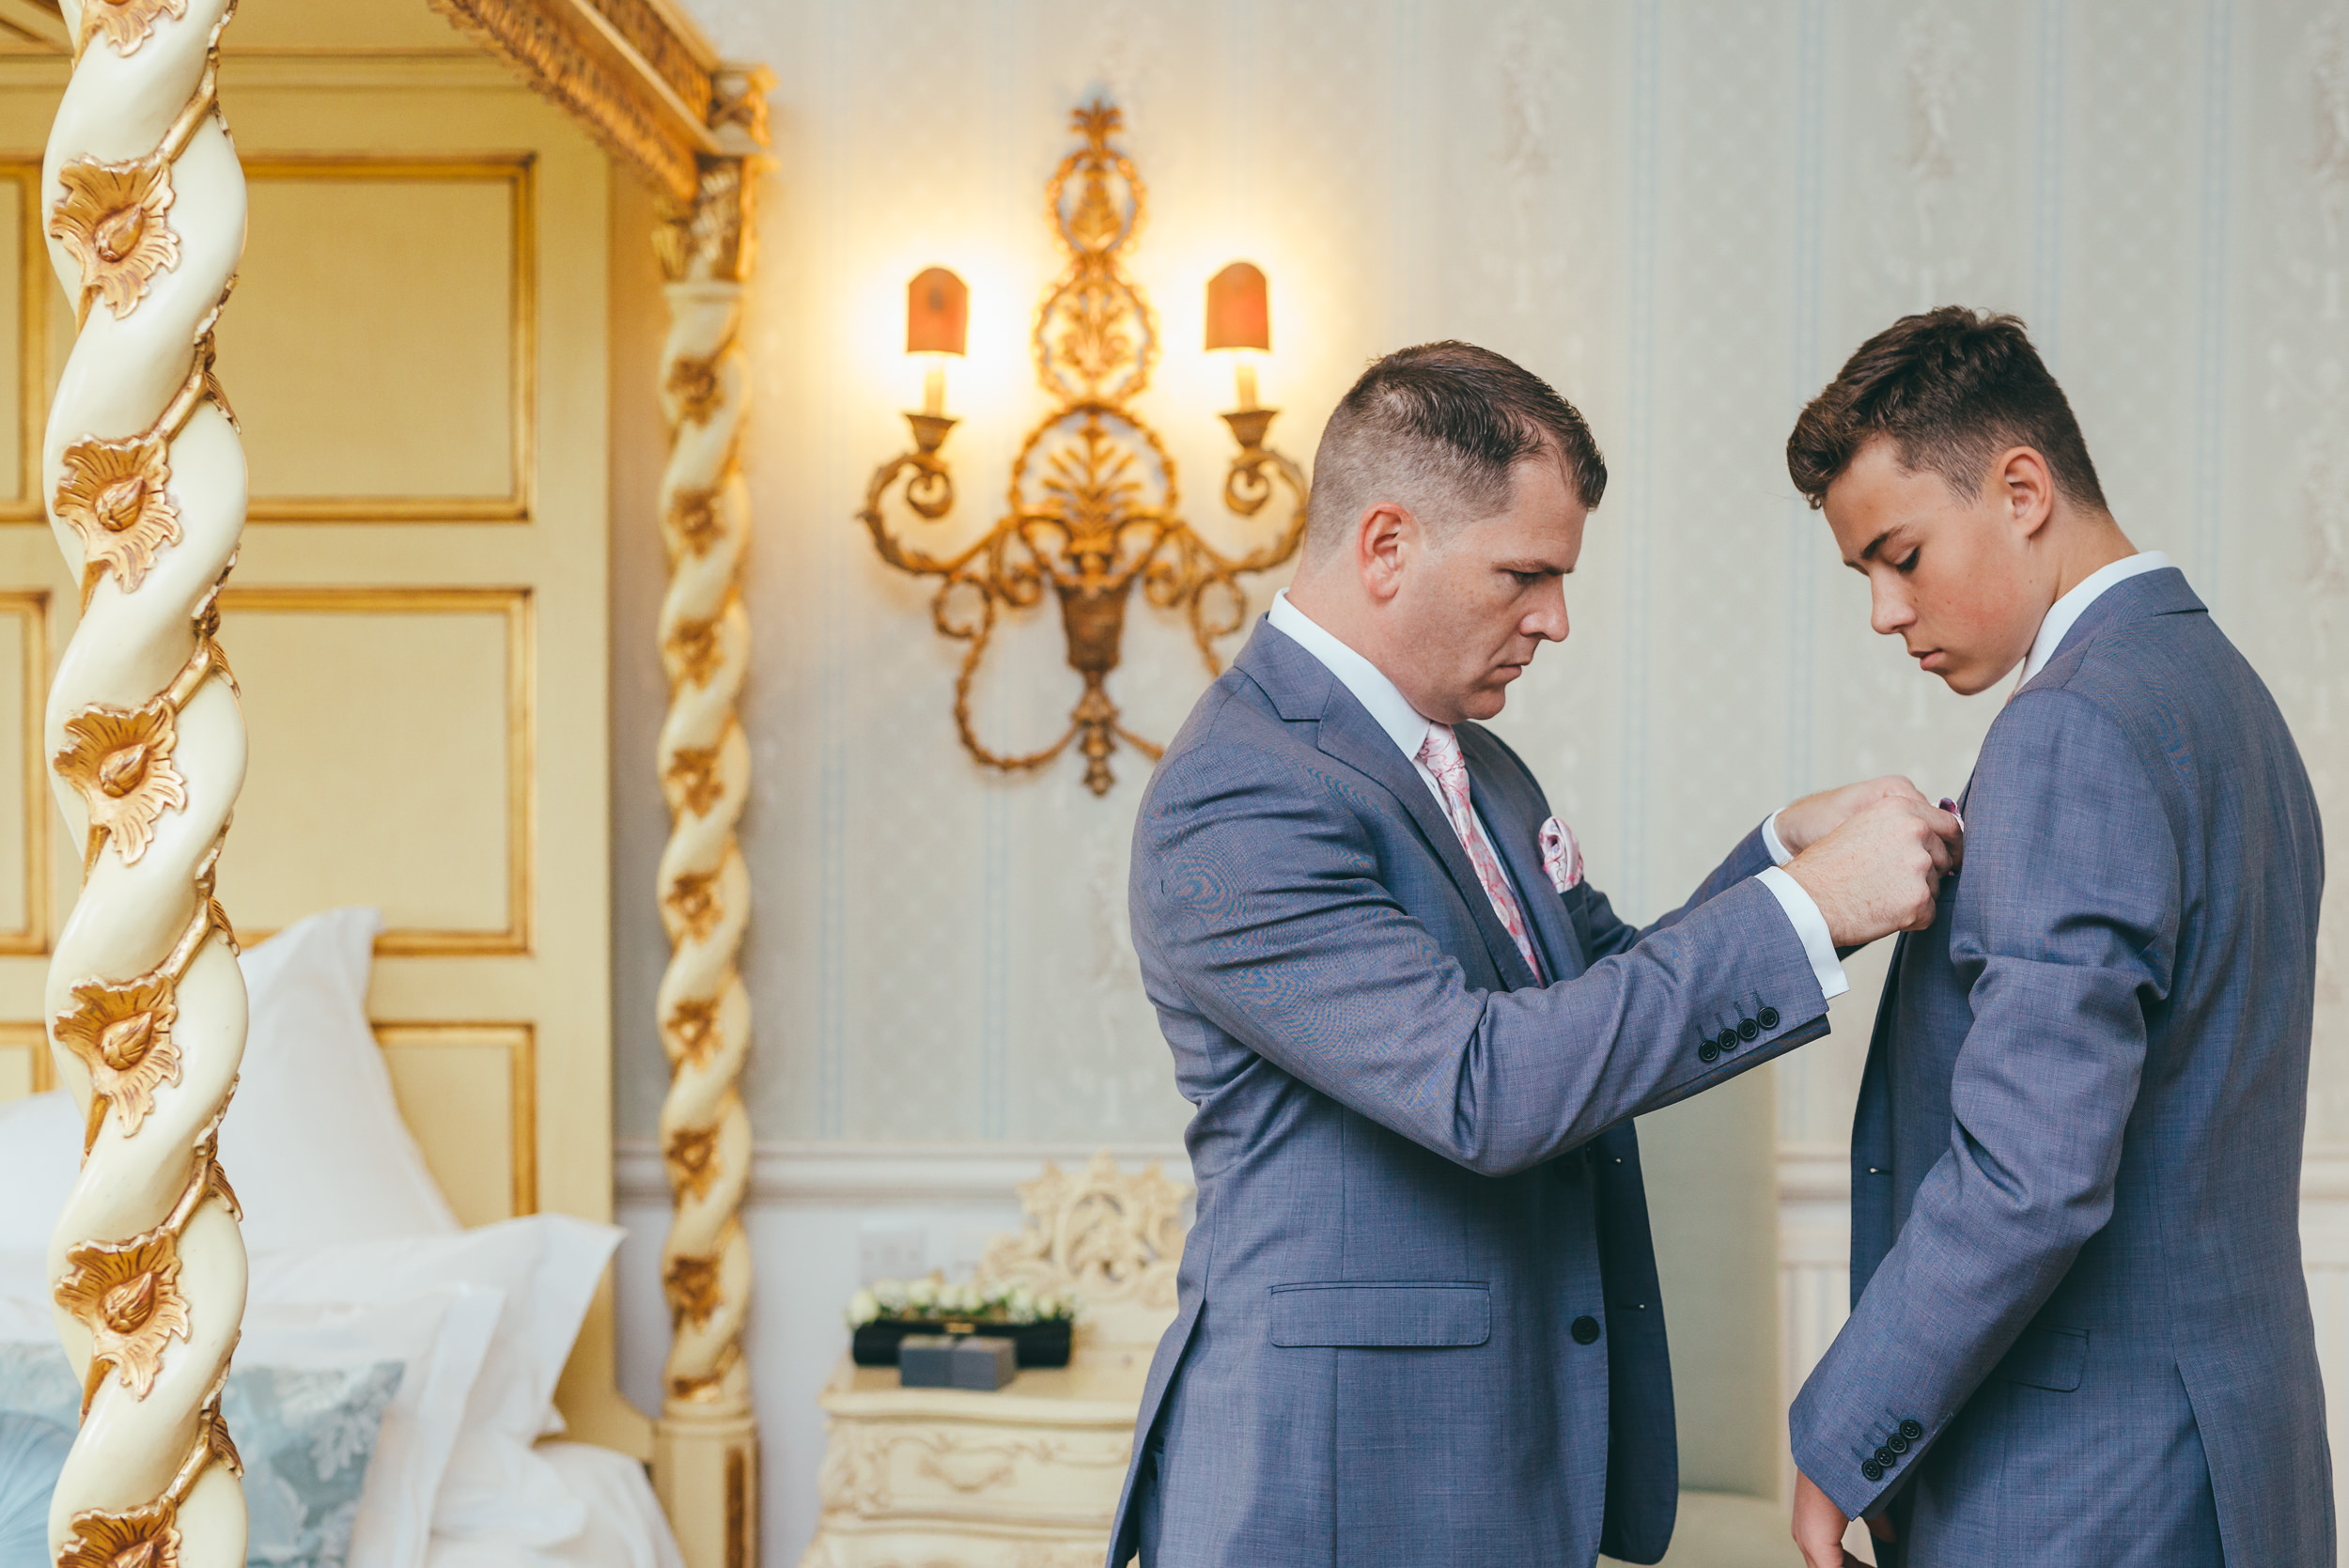 Groom and his usher getting dressed